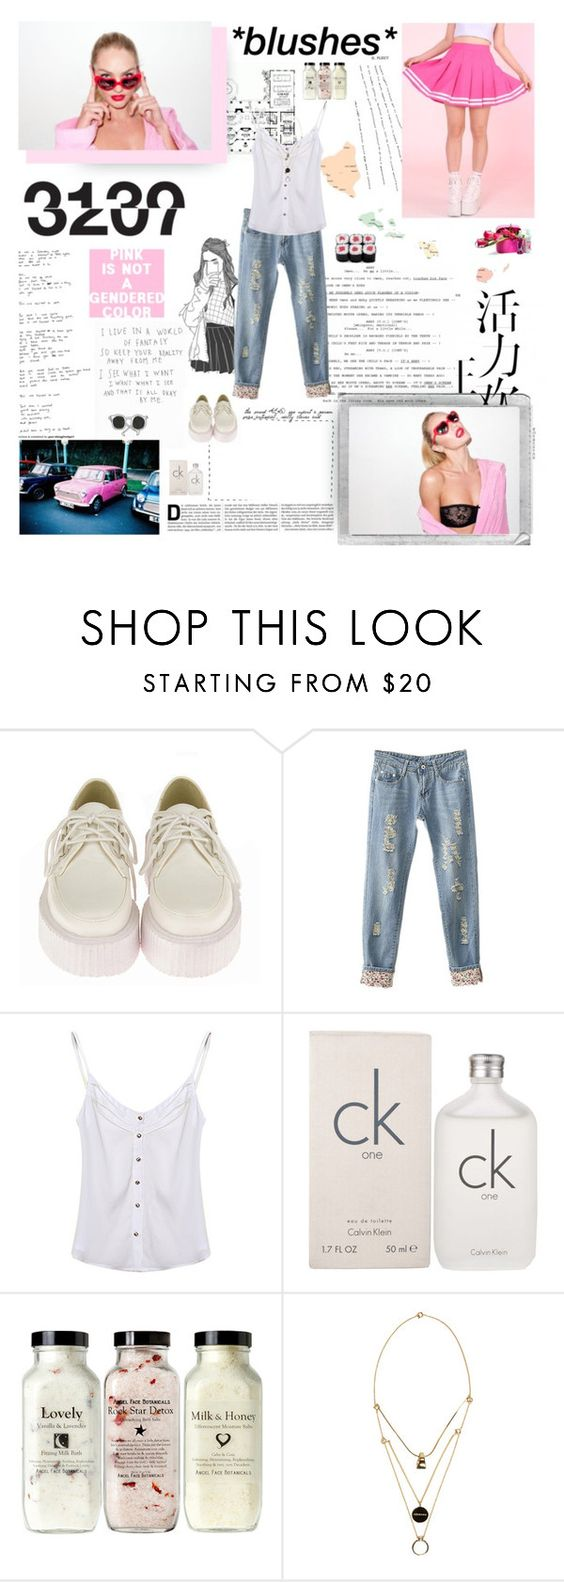 """pink flamingos, always fascinated me"" by spacelava ❤ liked on Polyvore featuring Retrò, Calvin Klein, Polaroid and Maison Margiela"